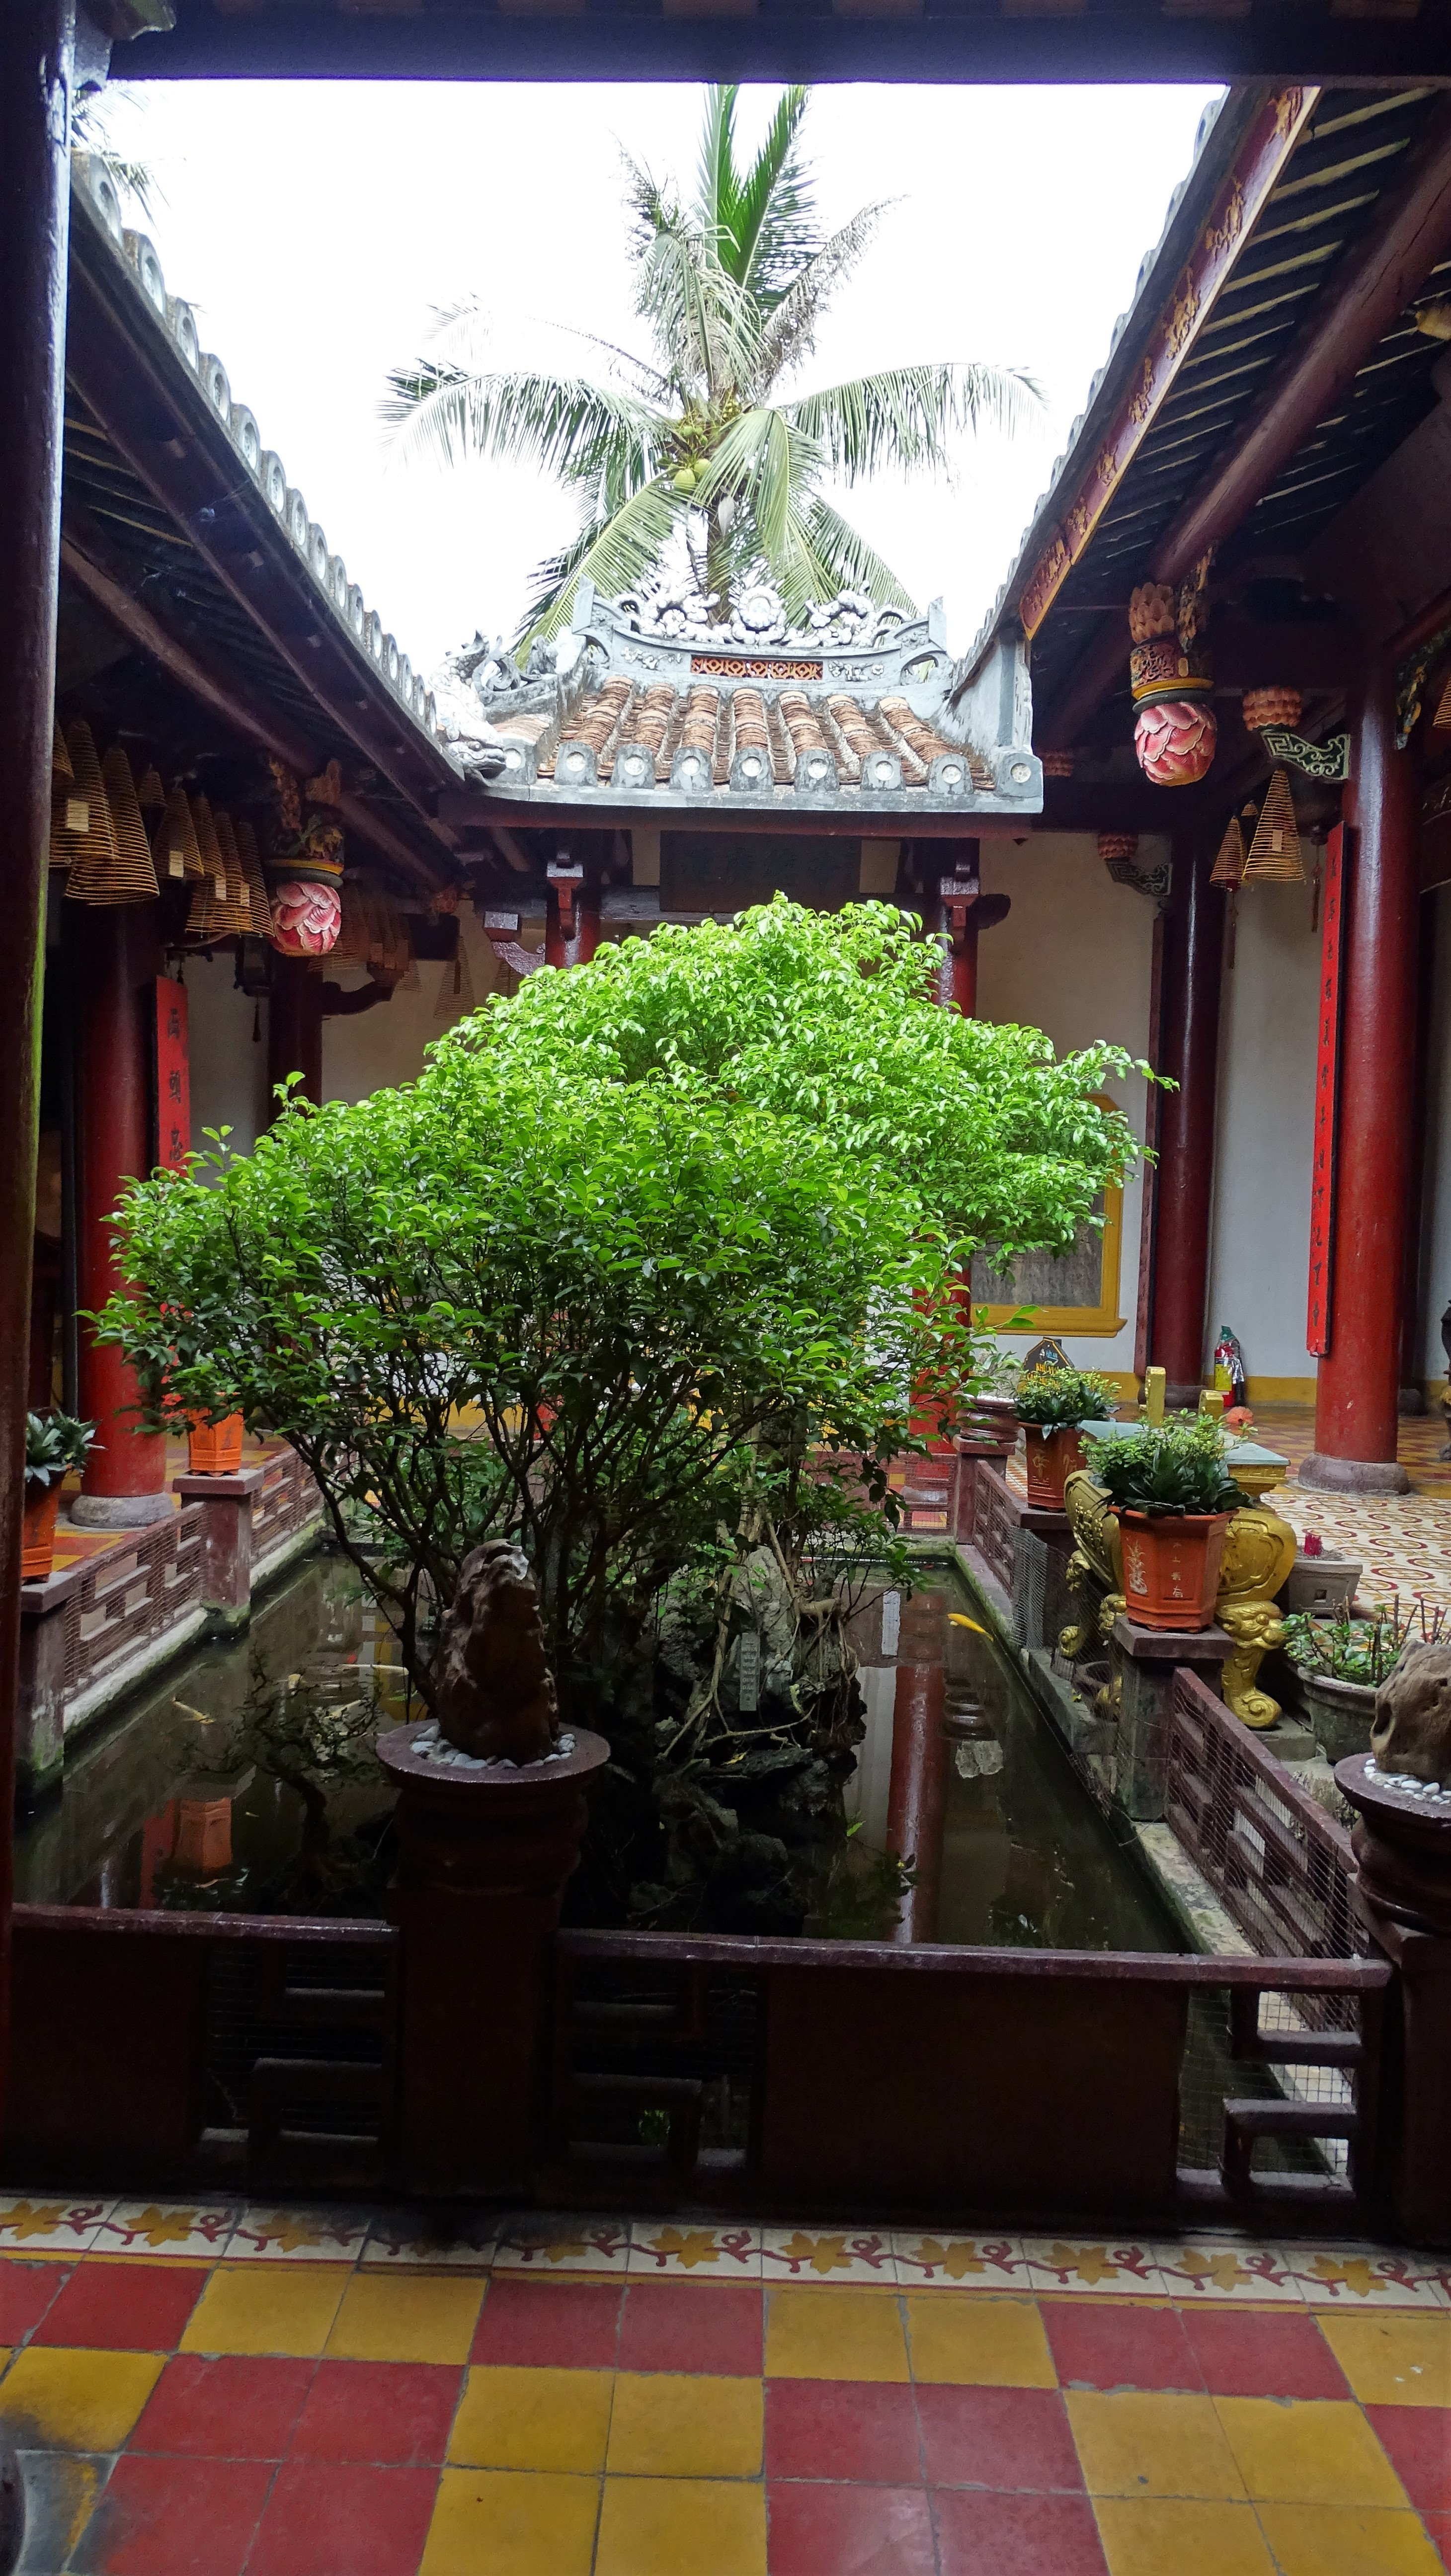 Quong Cong temple inner courtyard  lined with red columns and featuring a pond with plants in pots